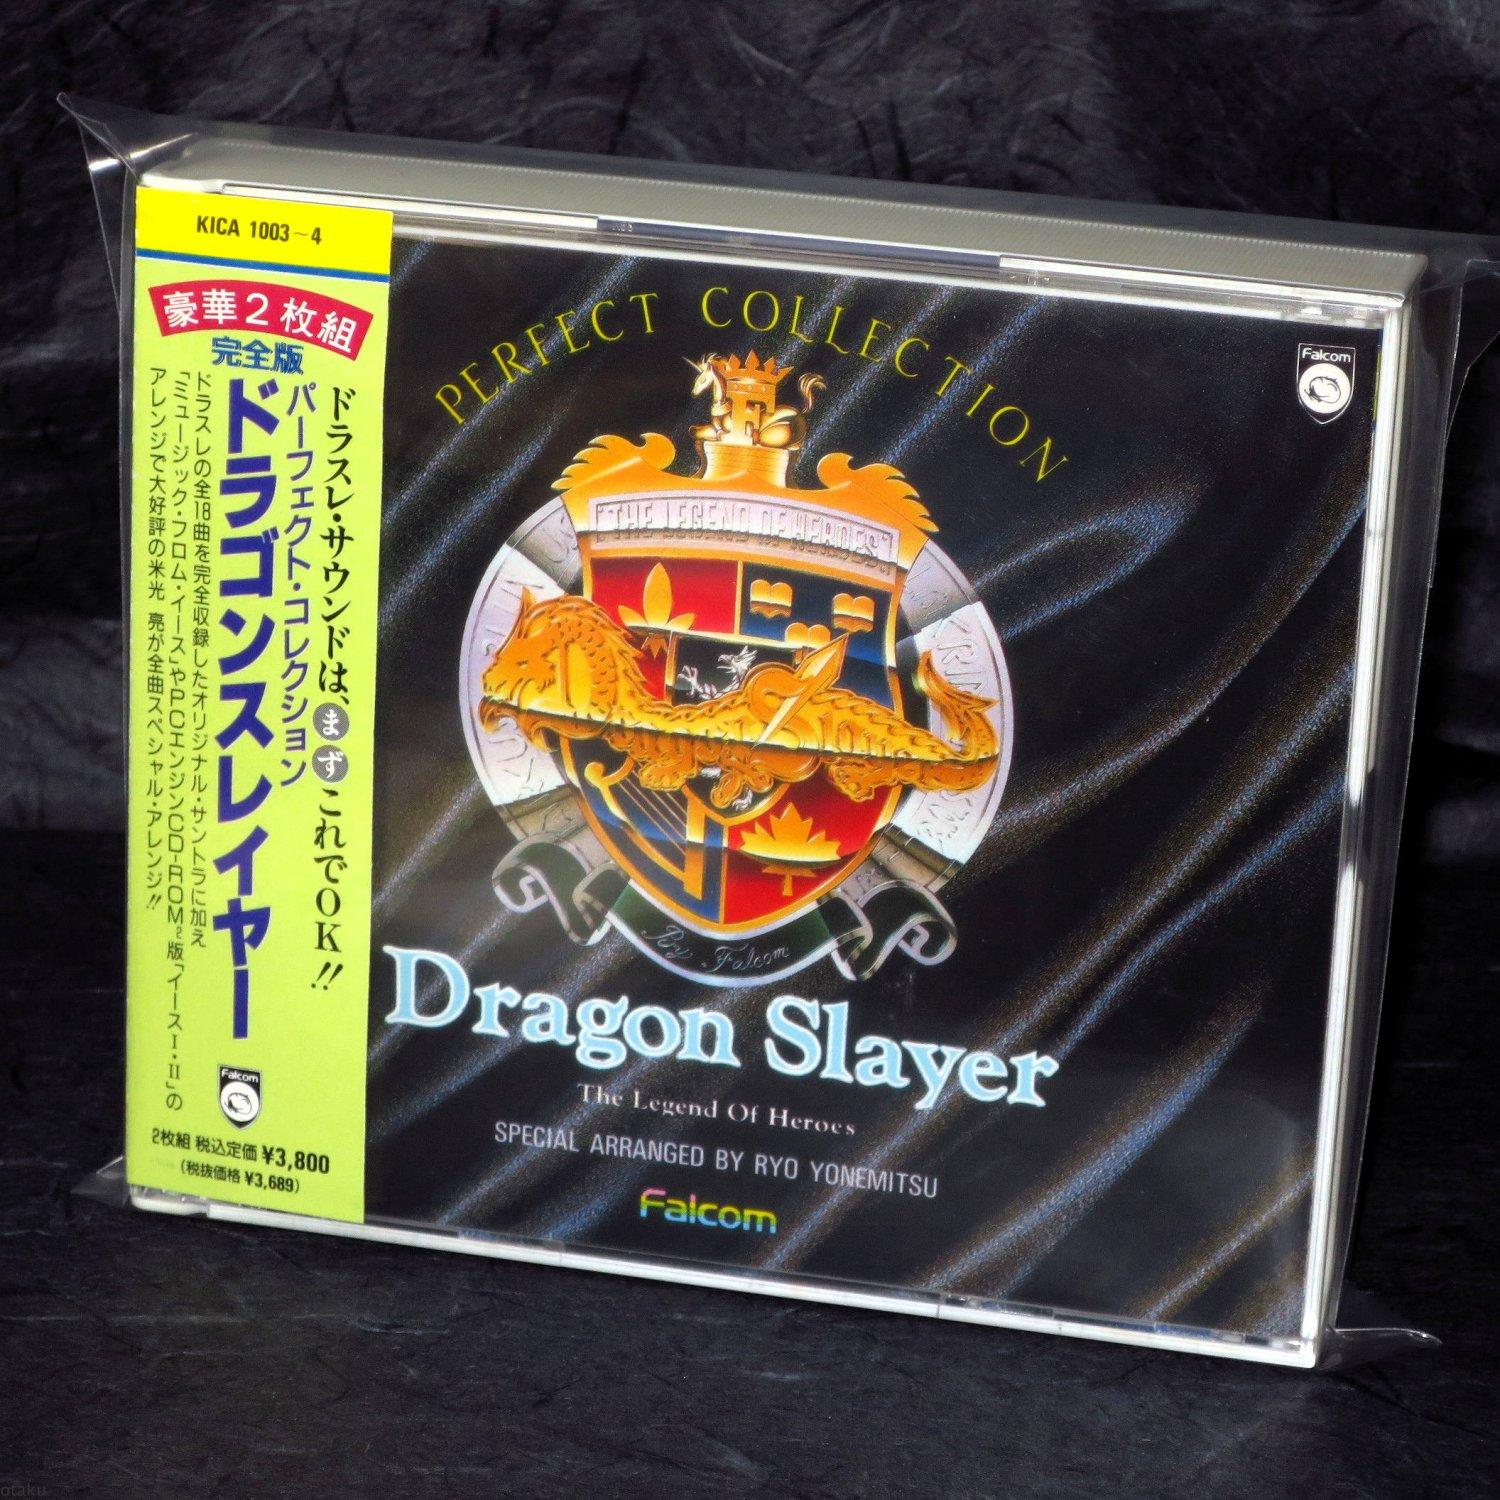 Perfect Collection Dragon Slayer Legend of Heroes Japan GAME MUSIC 2 CD SET